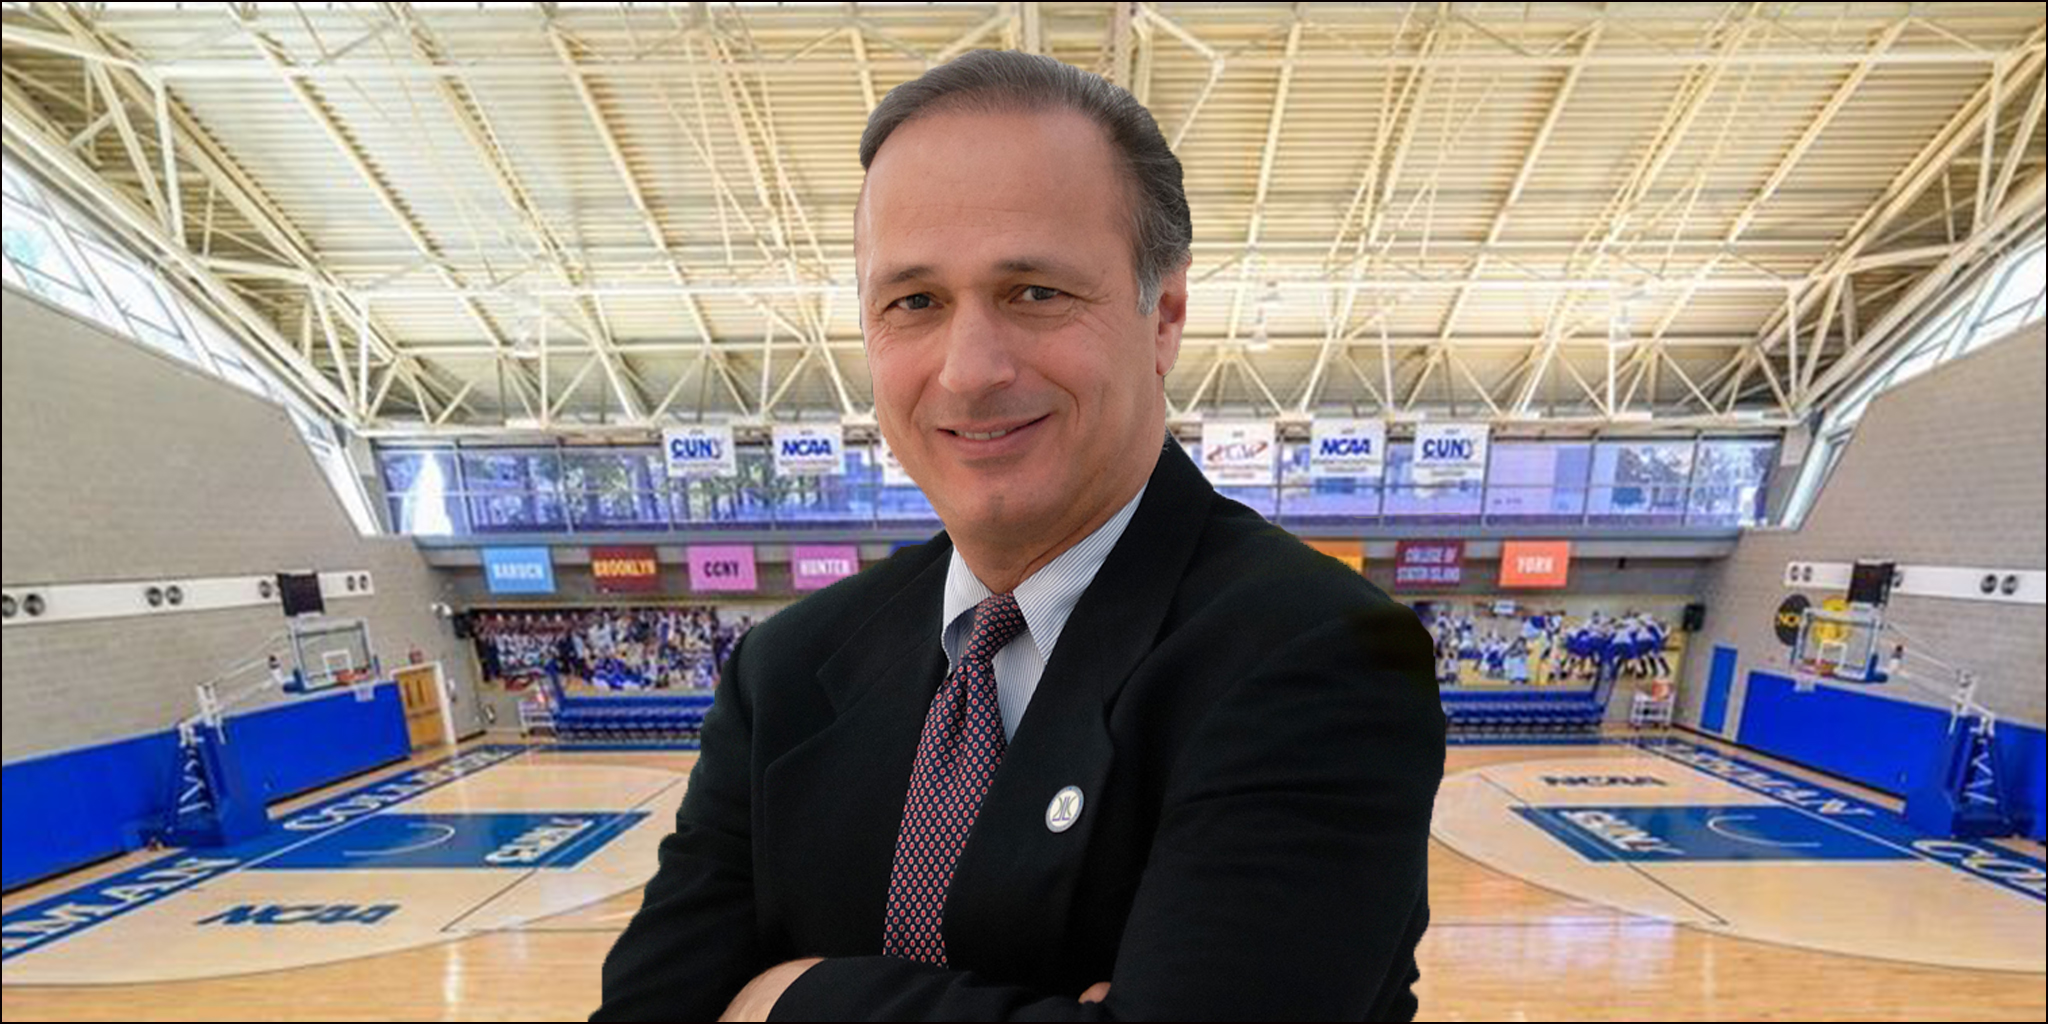 Lehman College Athletic Director Martin Zwiren Elected CUNYAC President